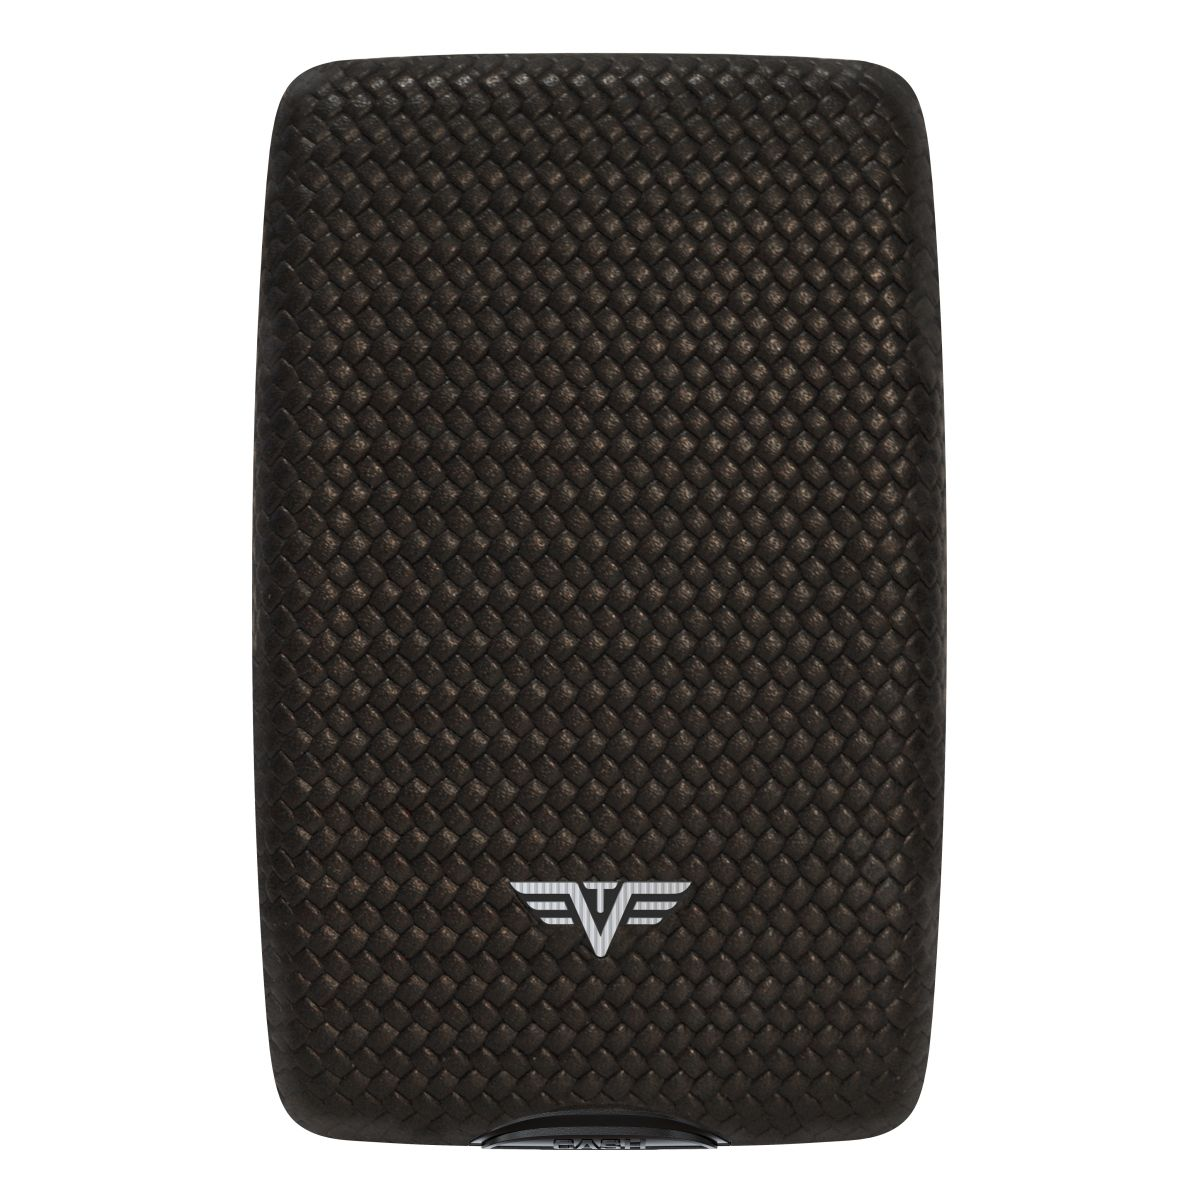 TRU VIRTU Aluminum Wallet Oyster Cash & Cards - Leather Line - Carbon Black